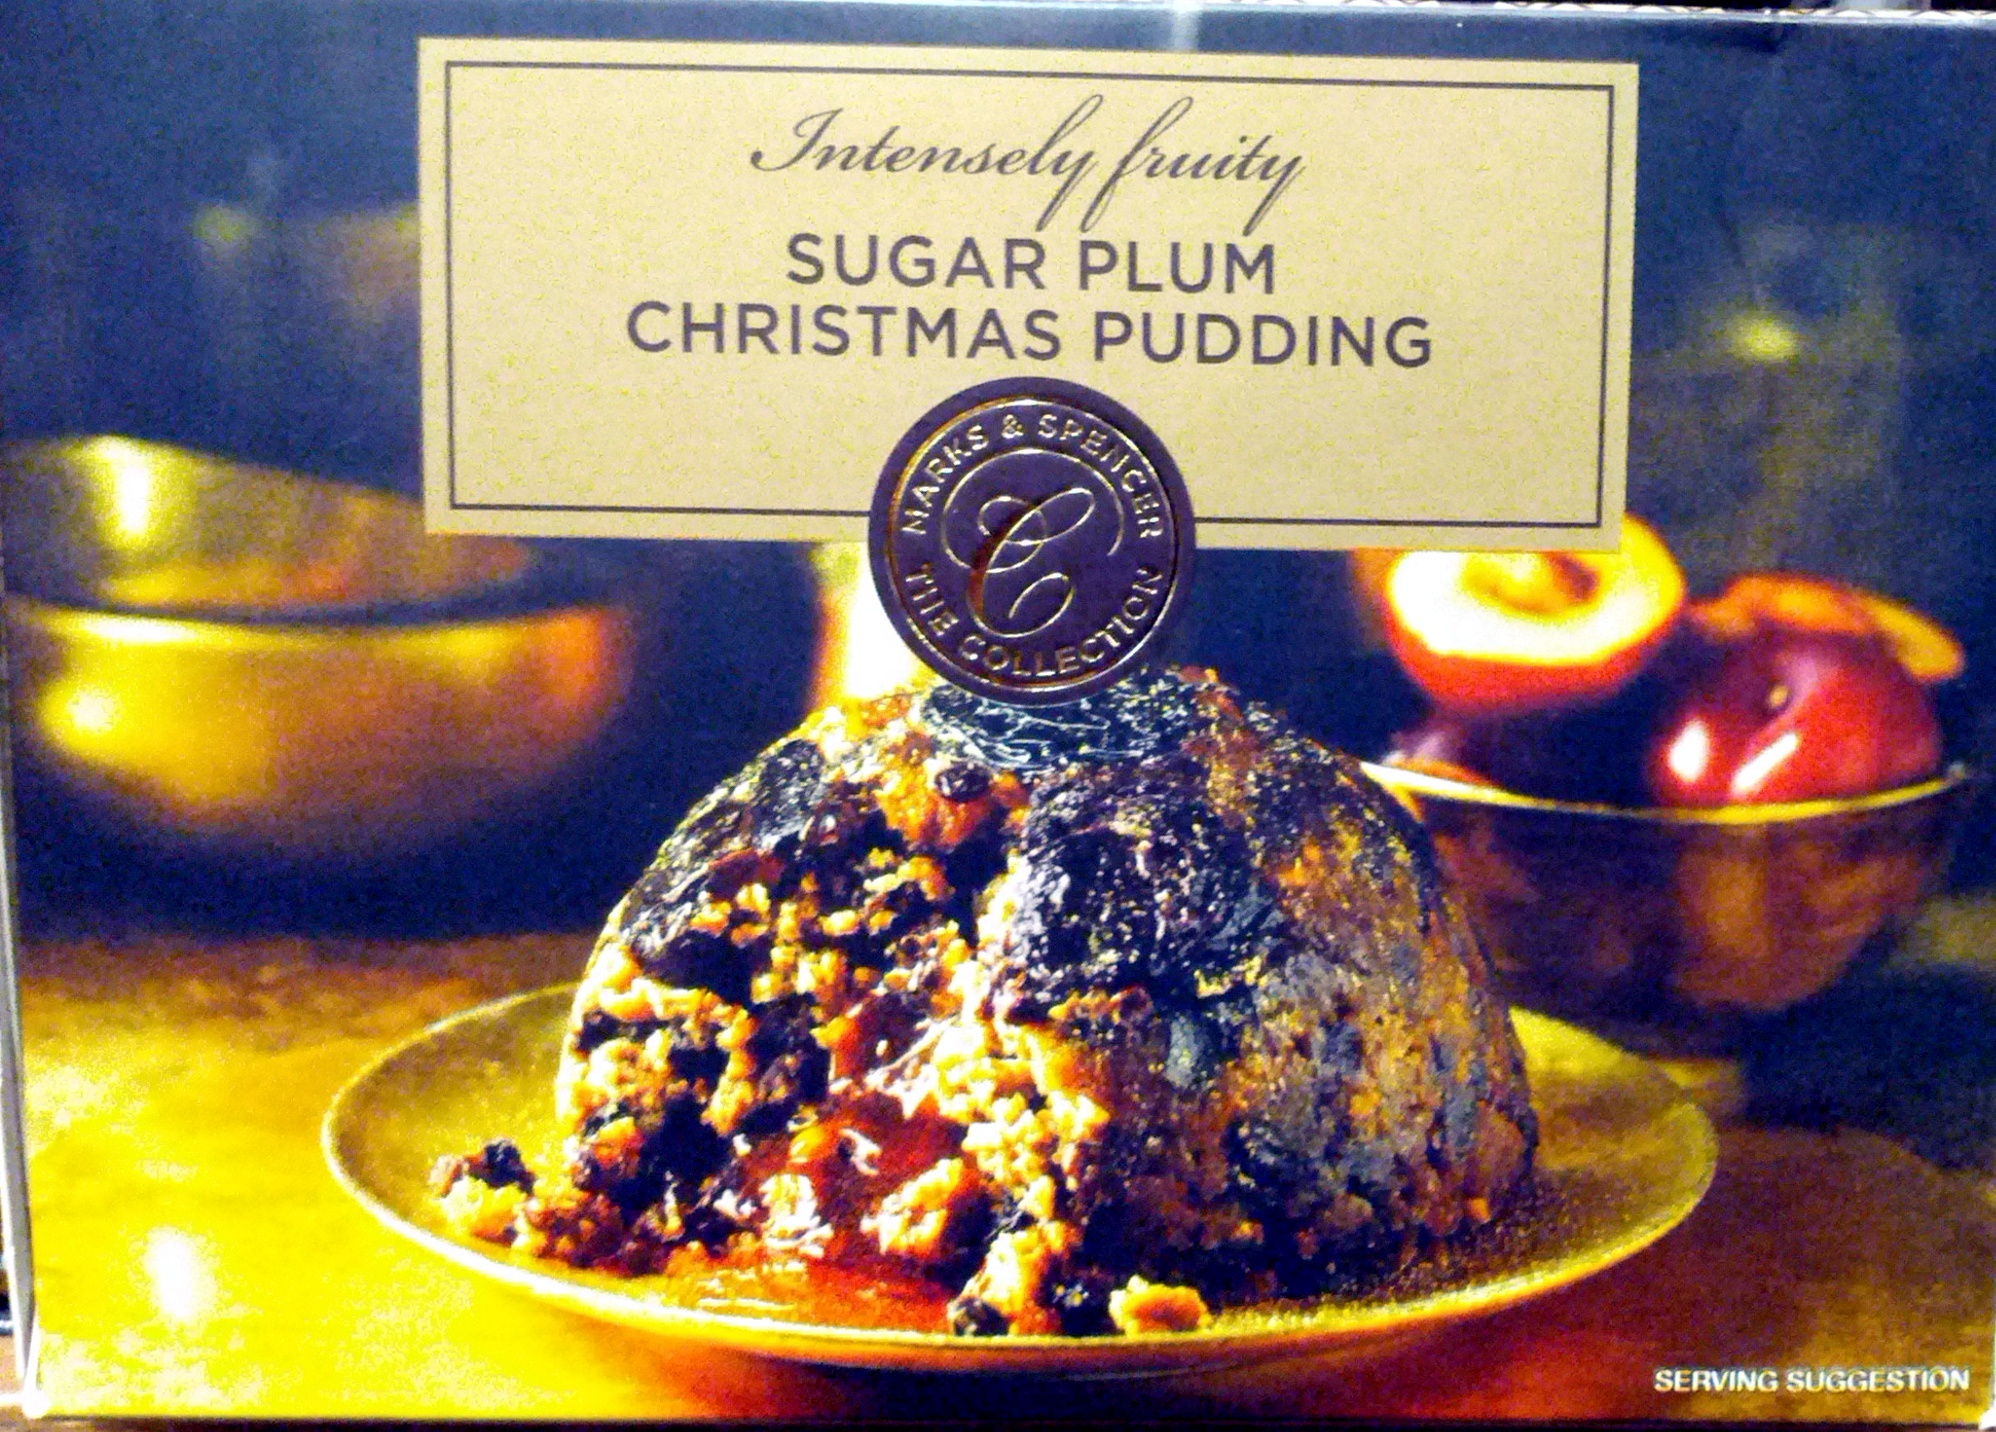 Sugar Plum Christmas Pudding - Product